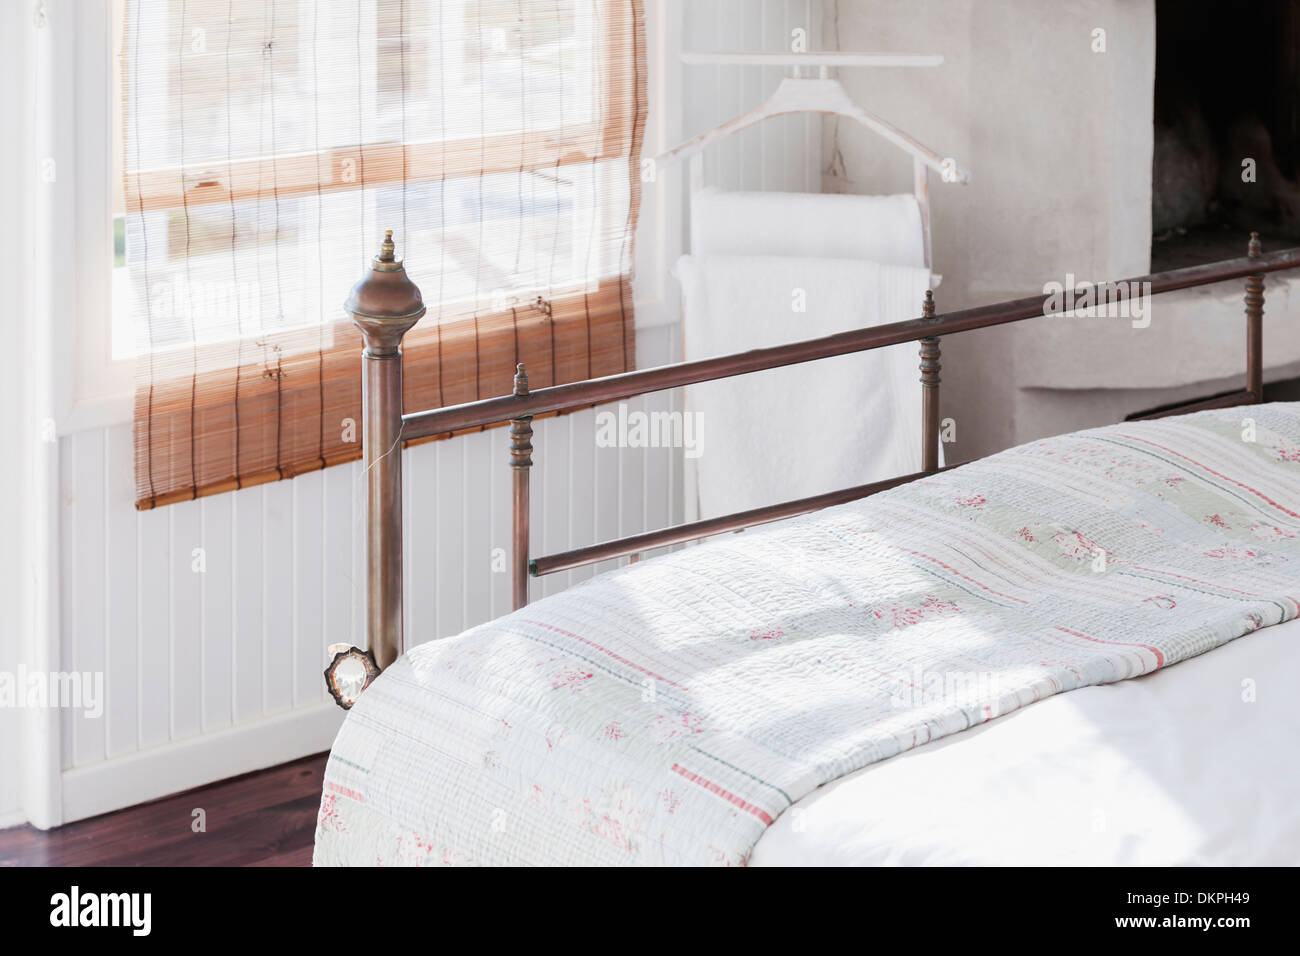 Metal frame on bed - Stock Image